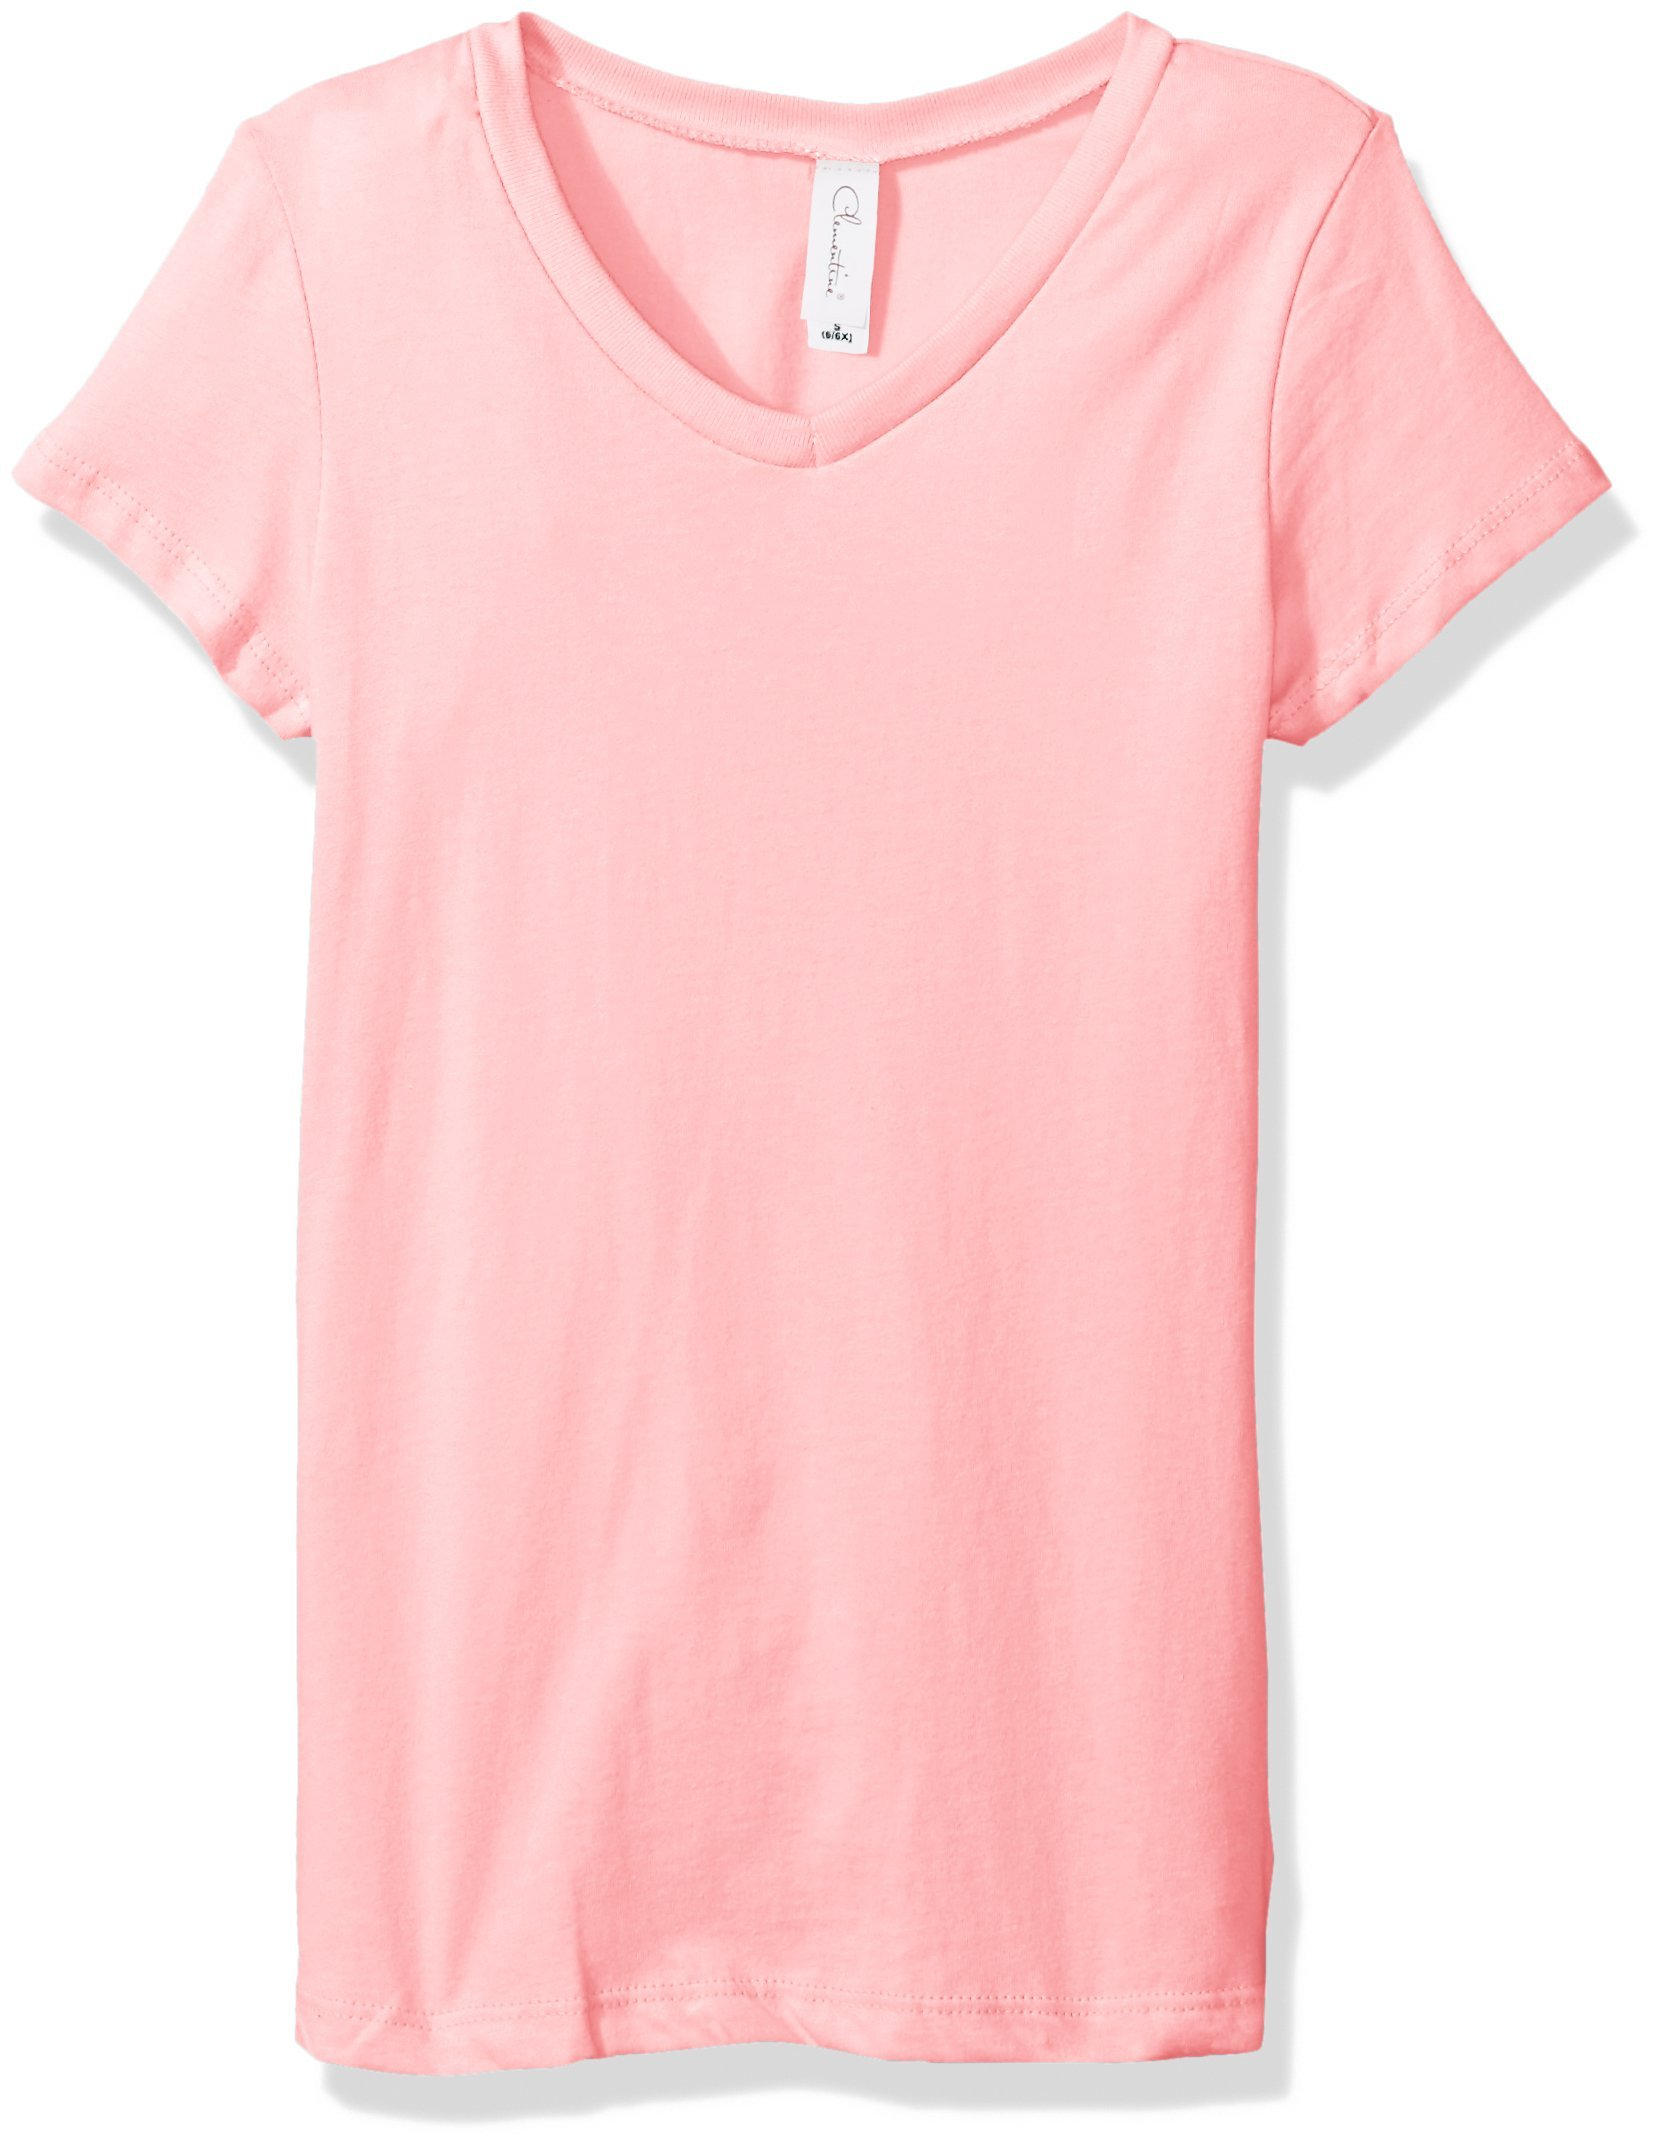 Clementine Apparel Big Girls' Everyday Short-Sleeve Princess V-Neck Tee, Light Pink, Small by Clementine Apparel